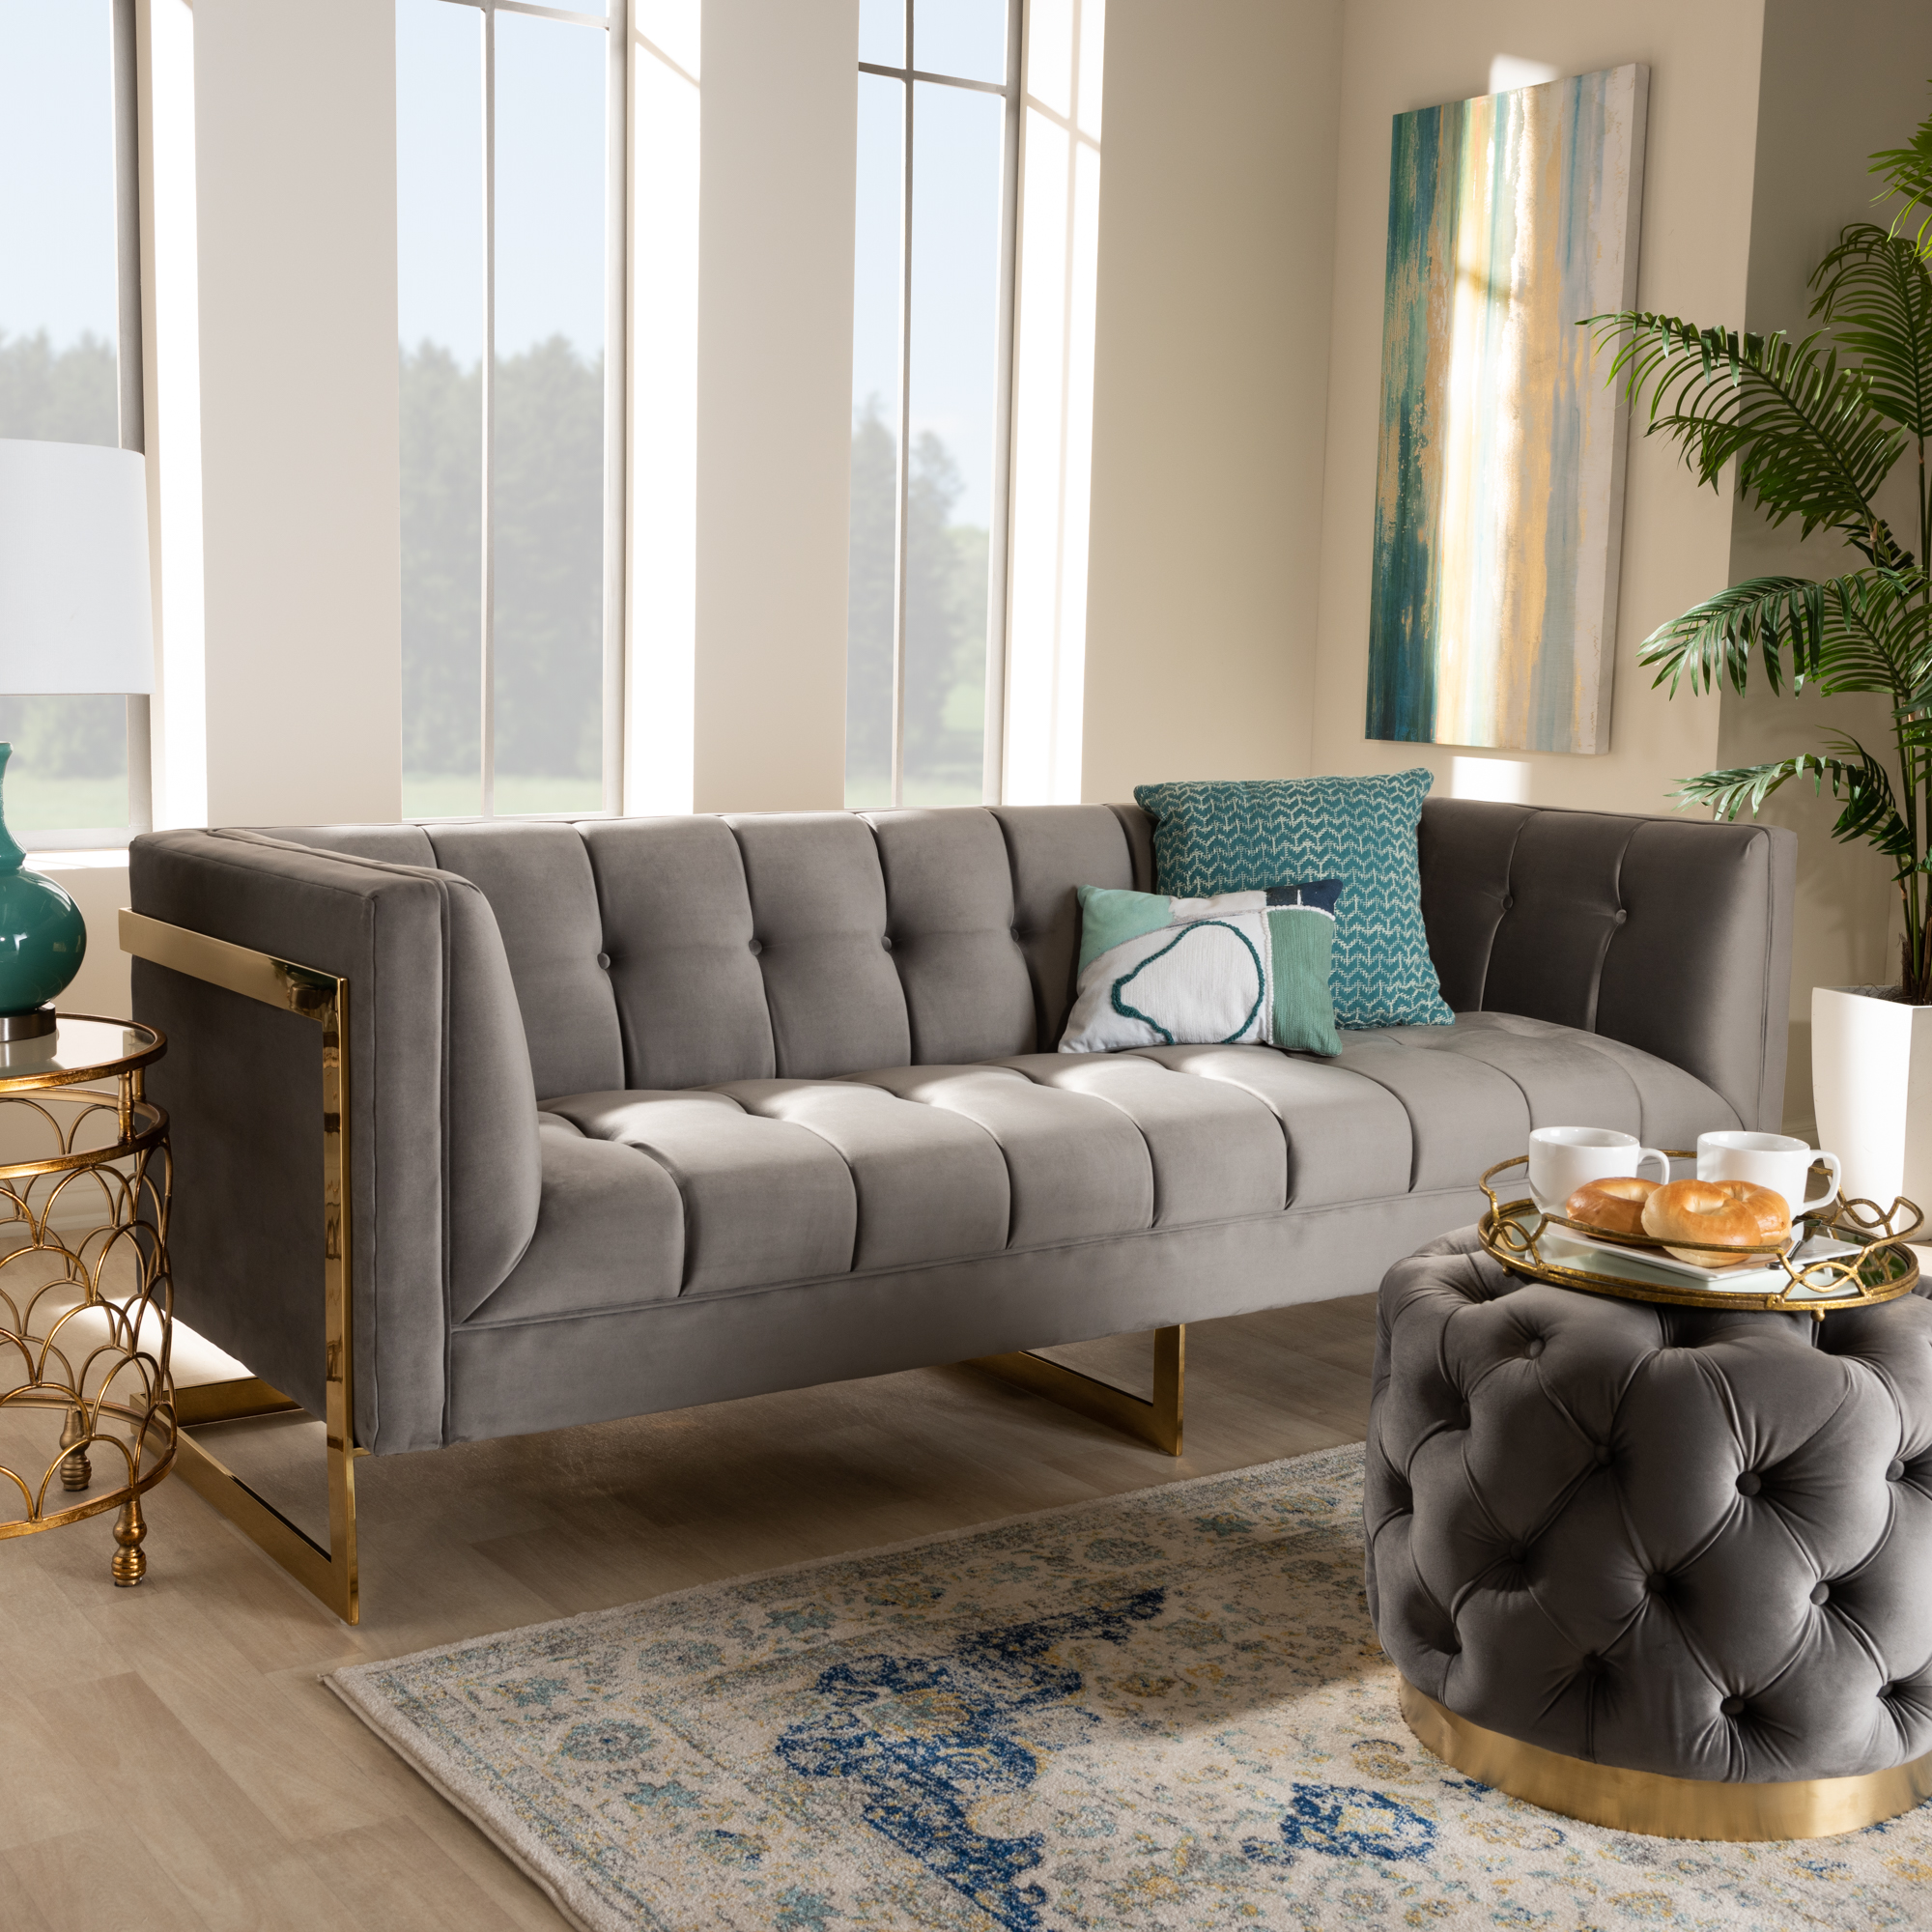 Baxton Studio Ambra Glam And Luxe Grey Velvet Fabric Upholstered And Button Tufted Sofa With Gold Tone Frame Walmart Com Walmart Com